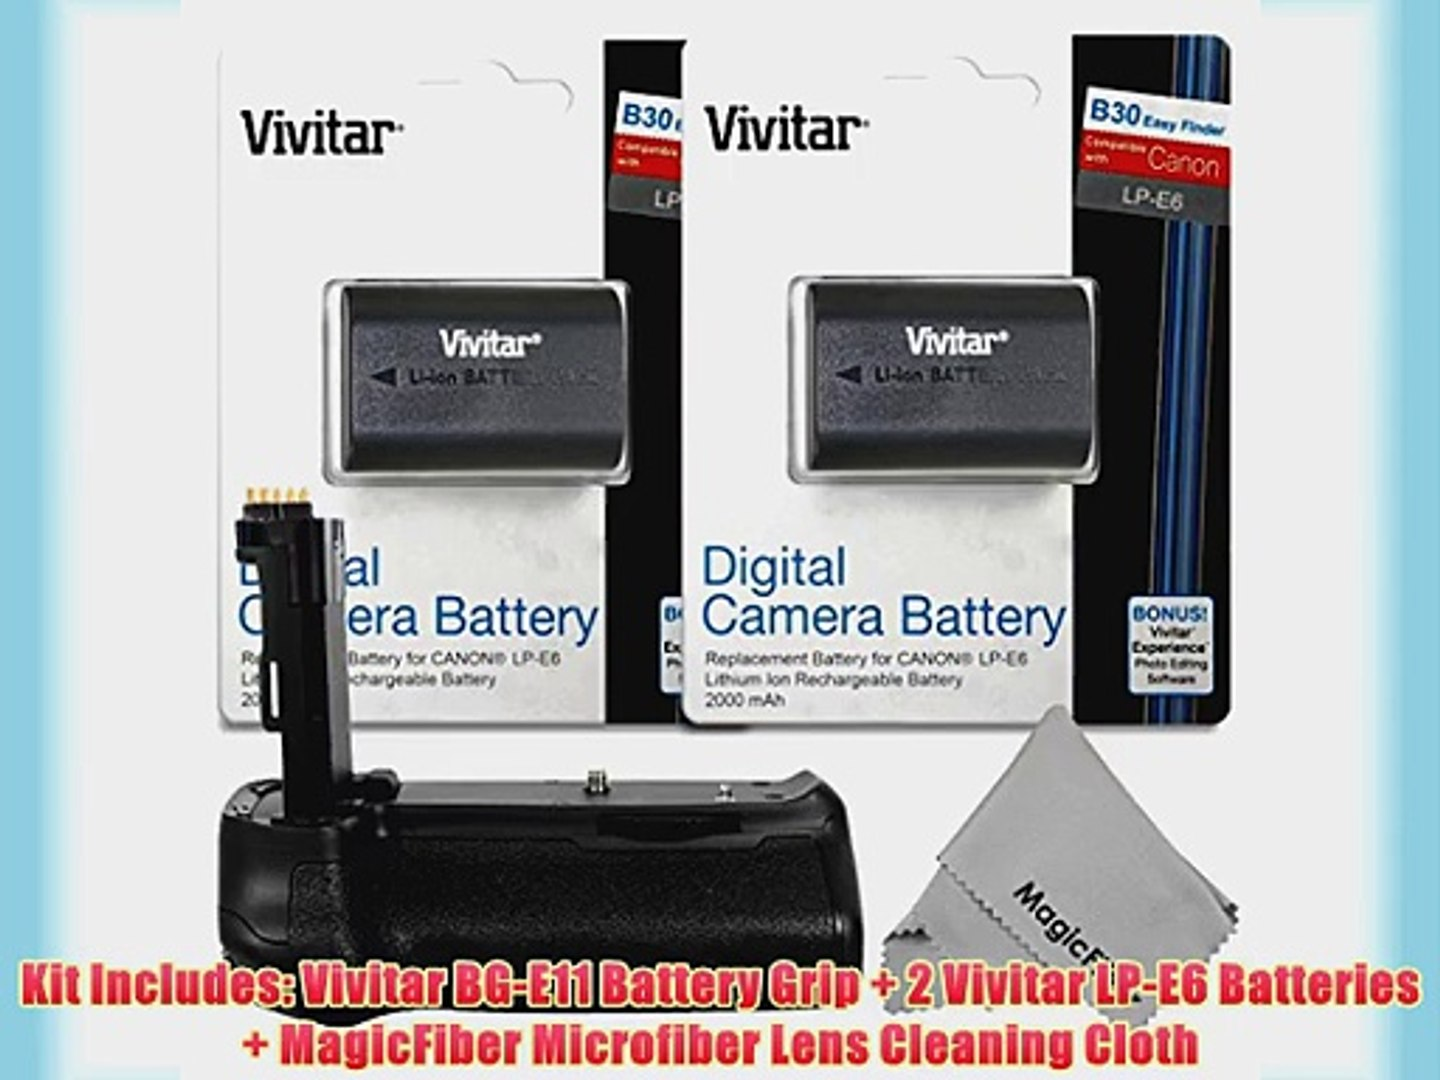 Vivitar BG-E11 Battery Grip for Canon EOS 5D MARK III DSLR Cameras   2 Vivitar LP-E6 Batteries